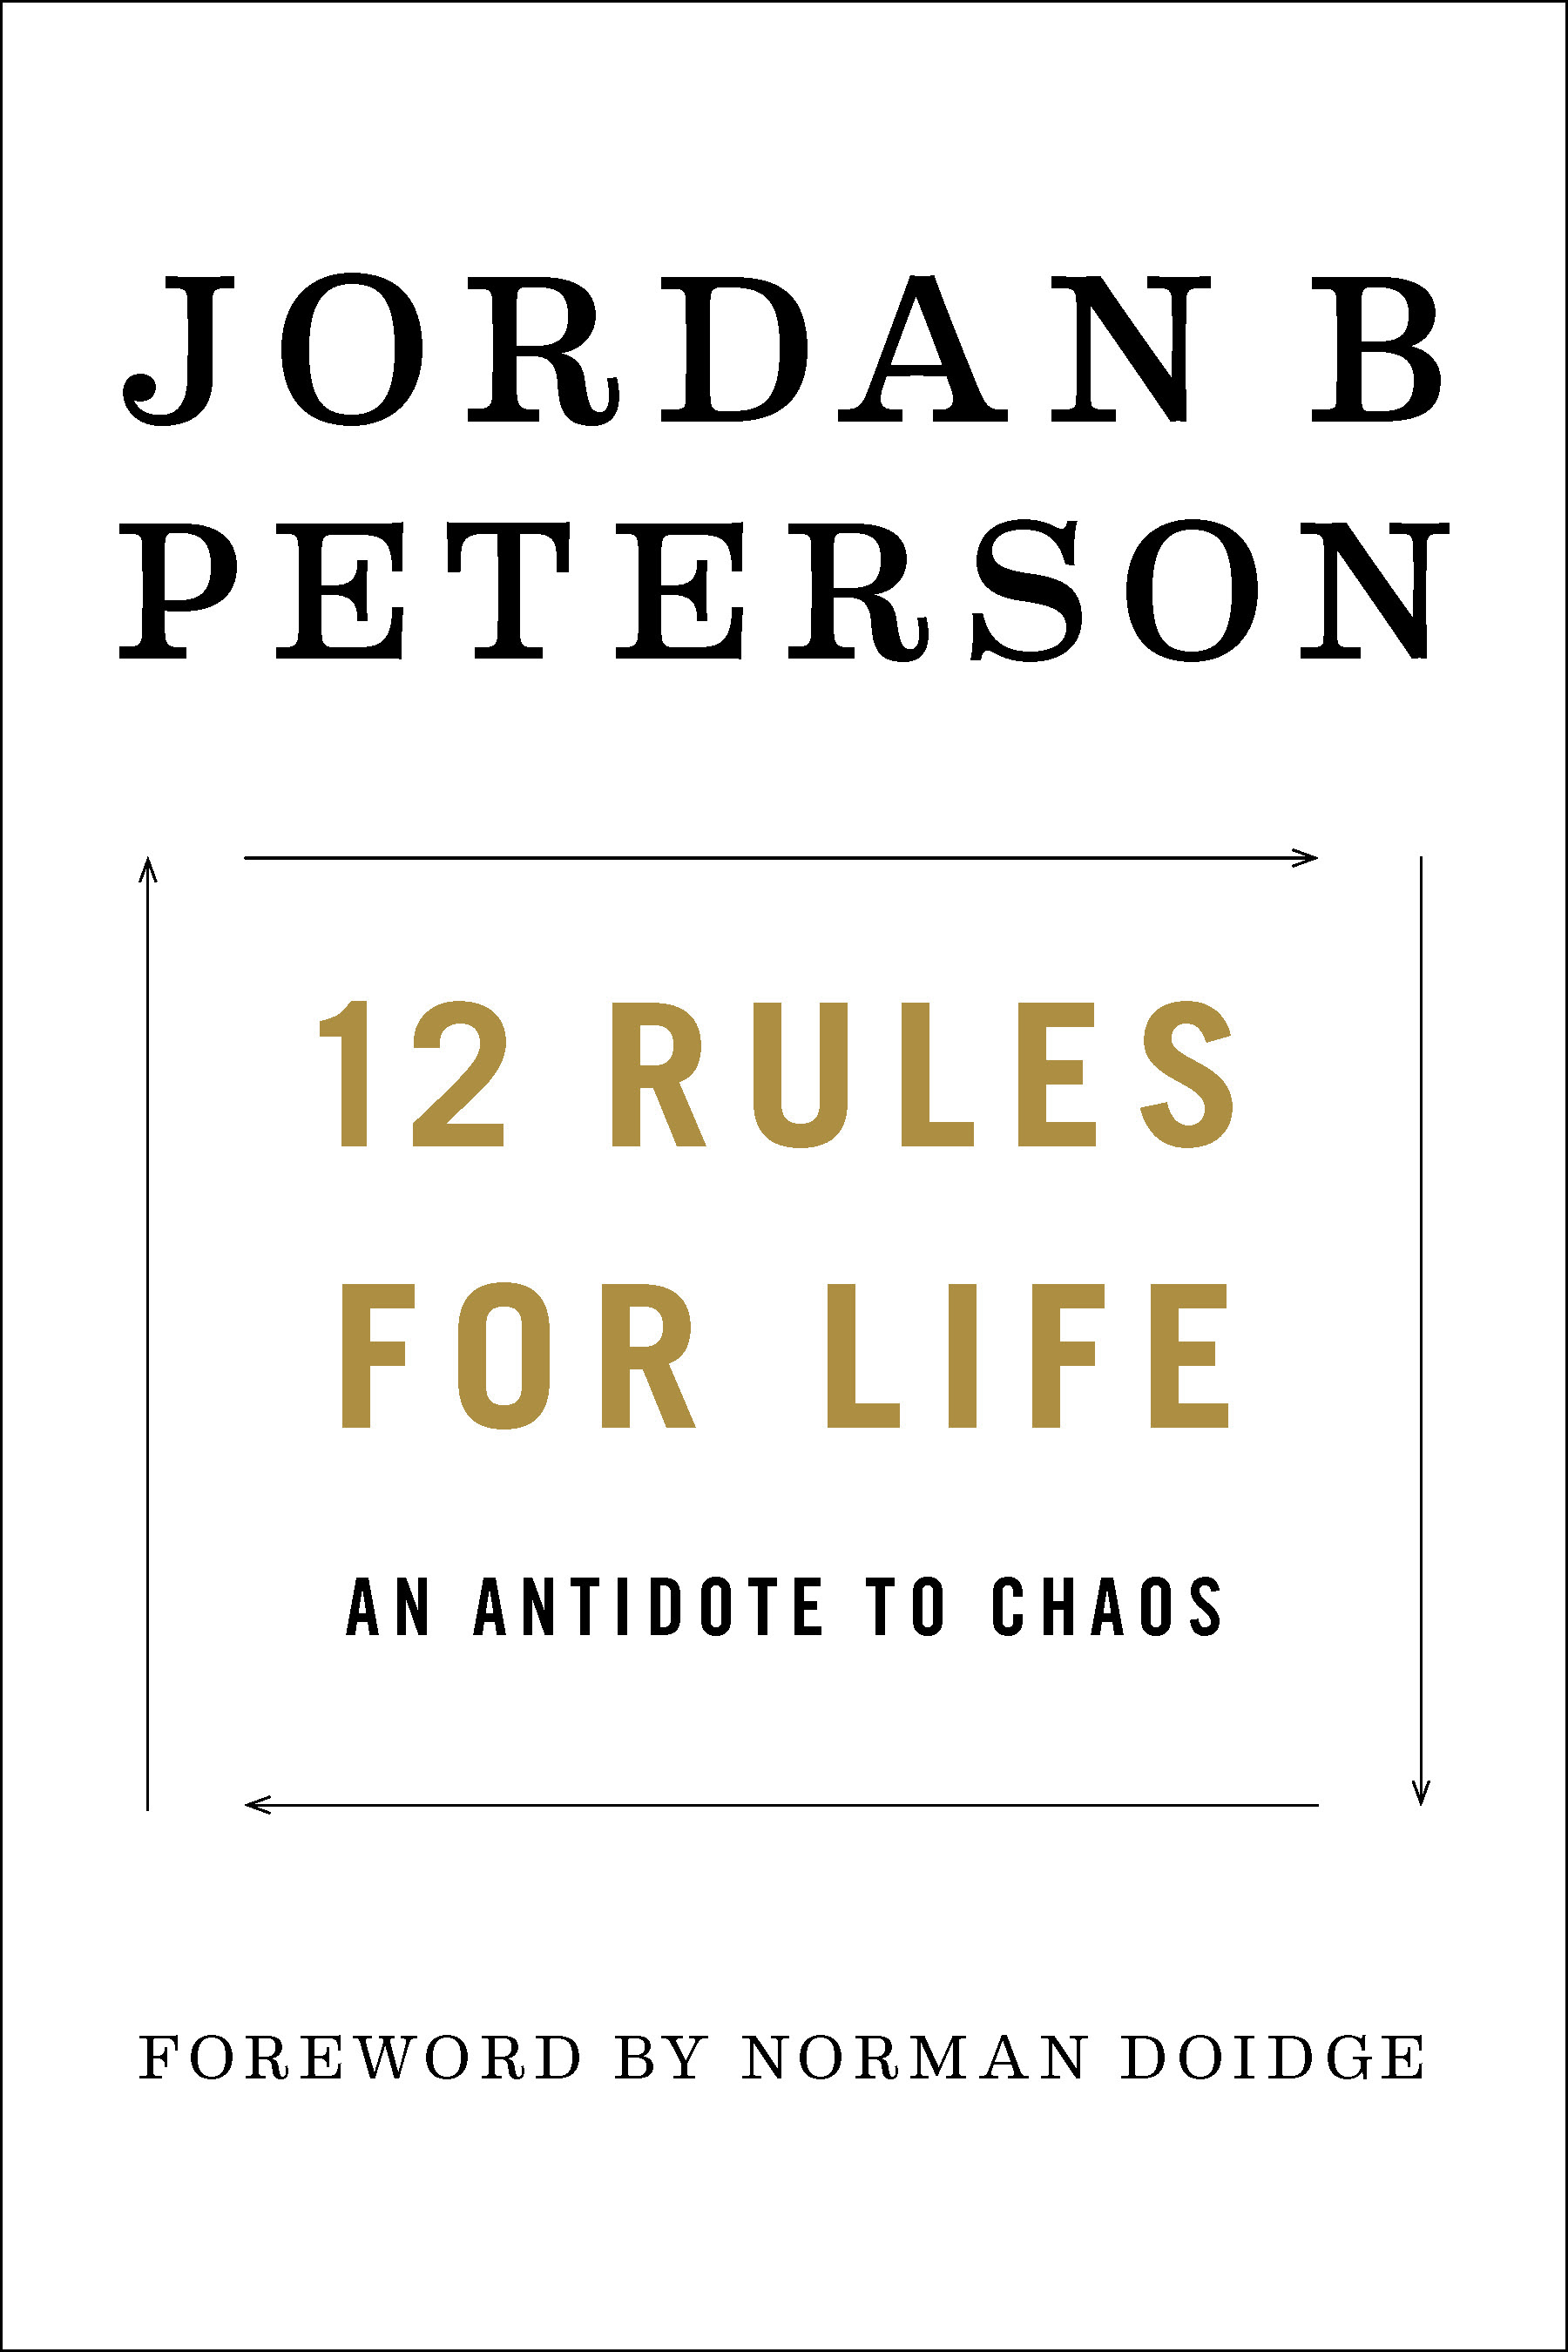 Toronto Event: 12 Rules for Life: An Antidote to Chaos